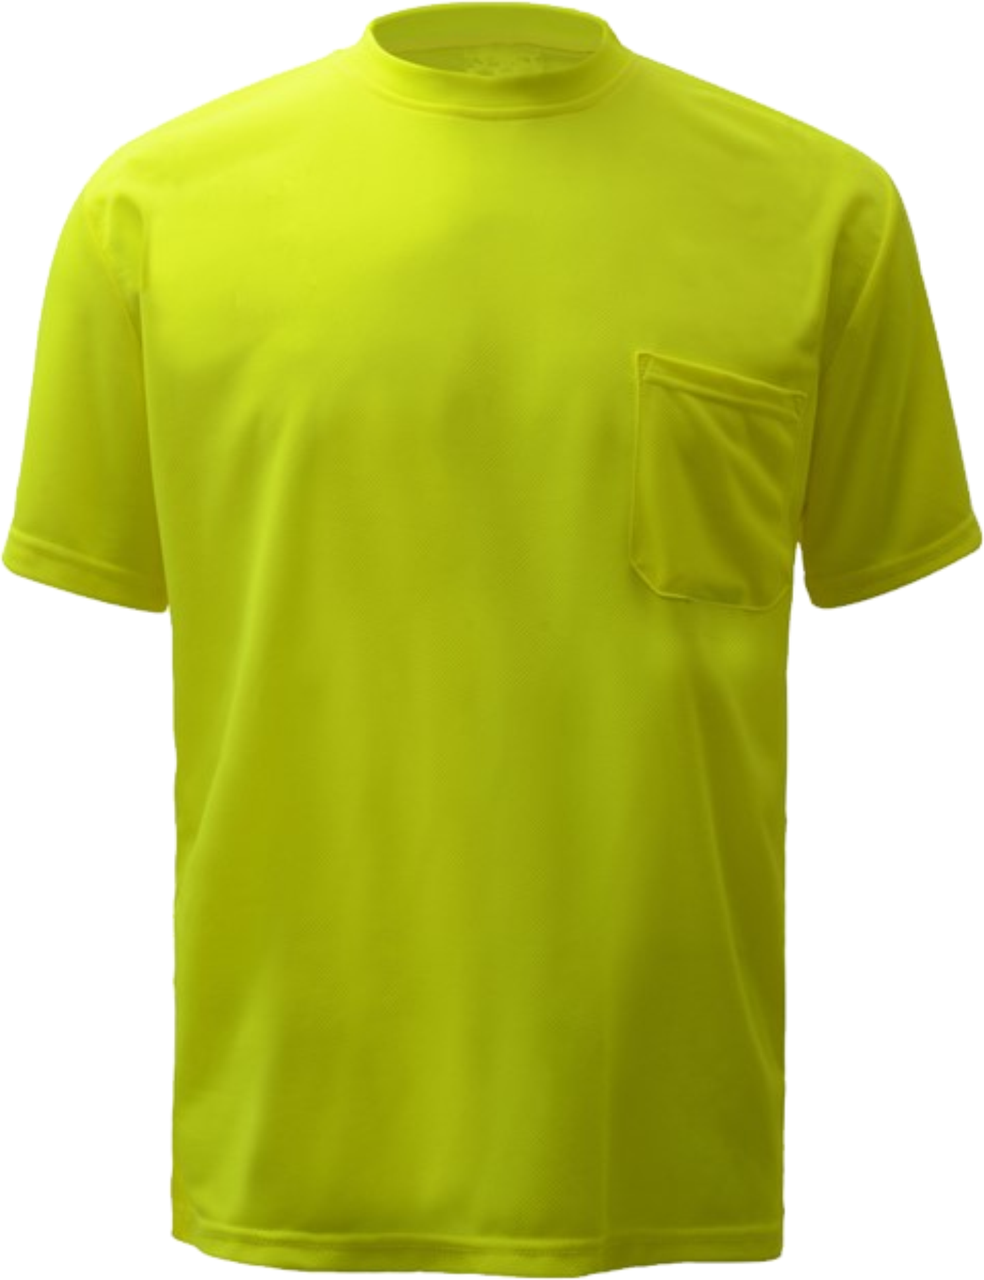 Safety Green  T Shirt with Pocket Polyester